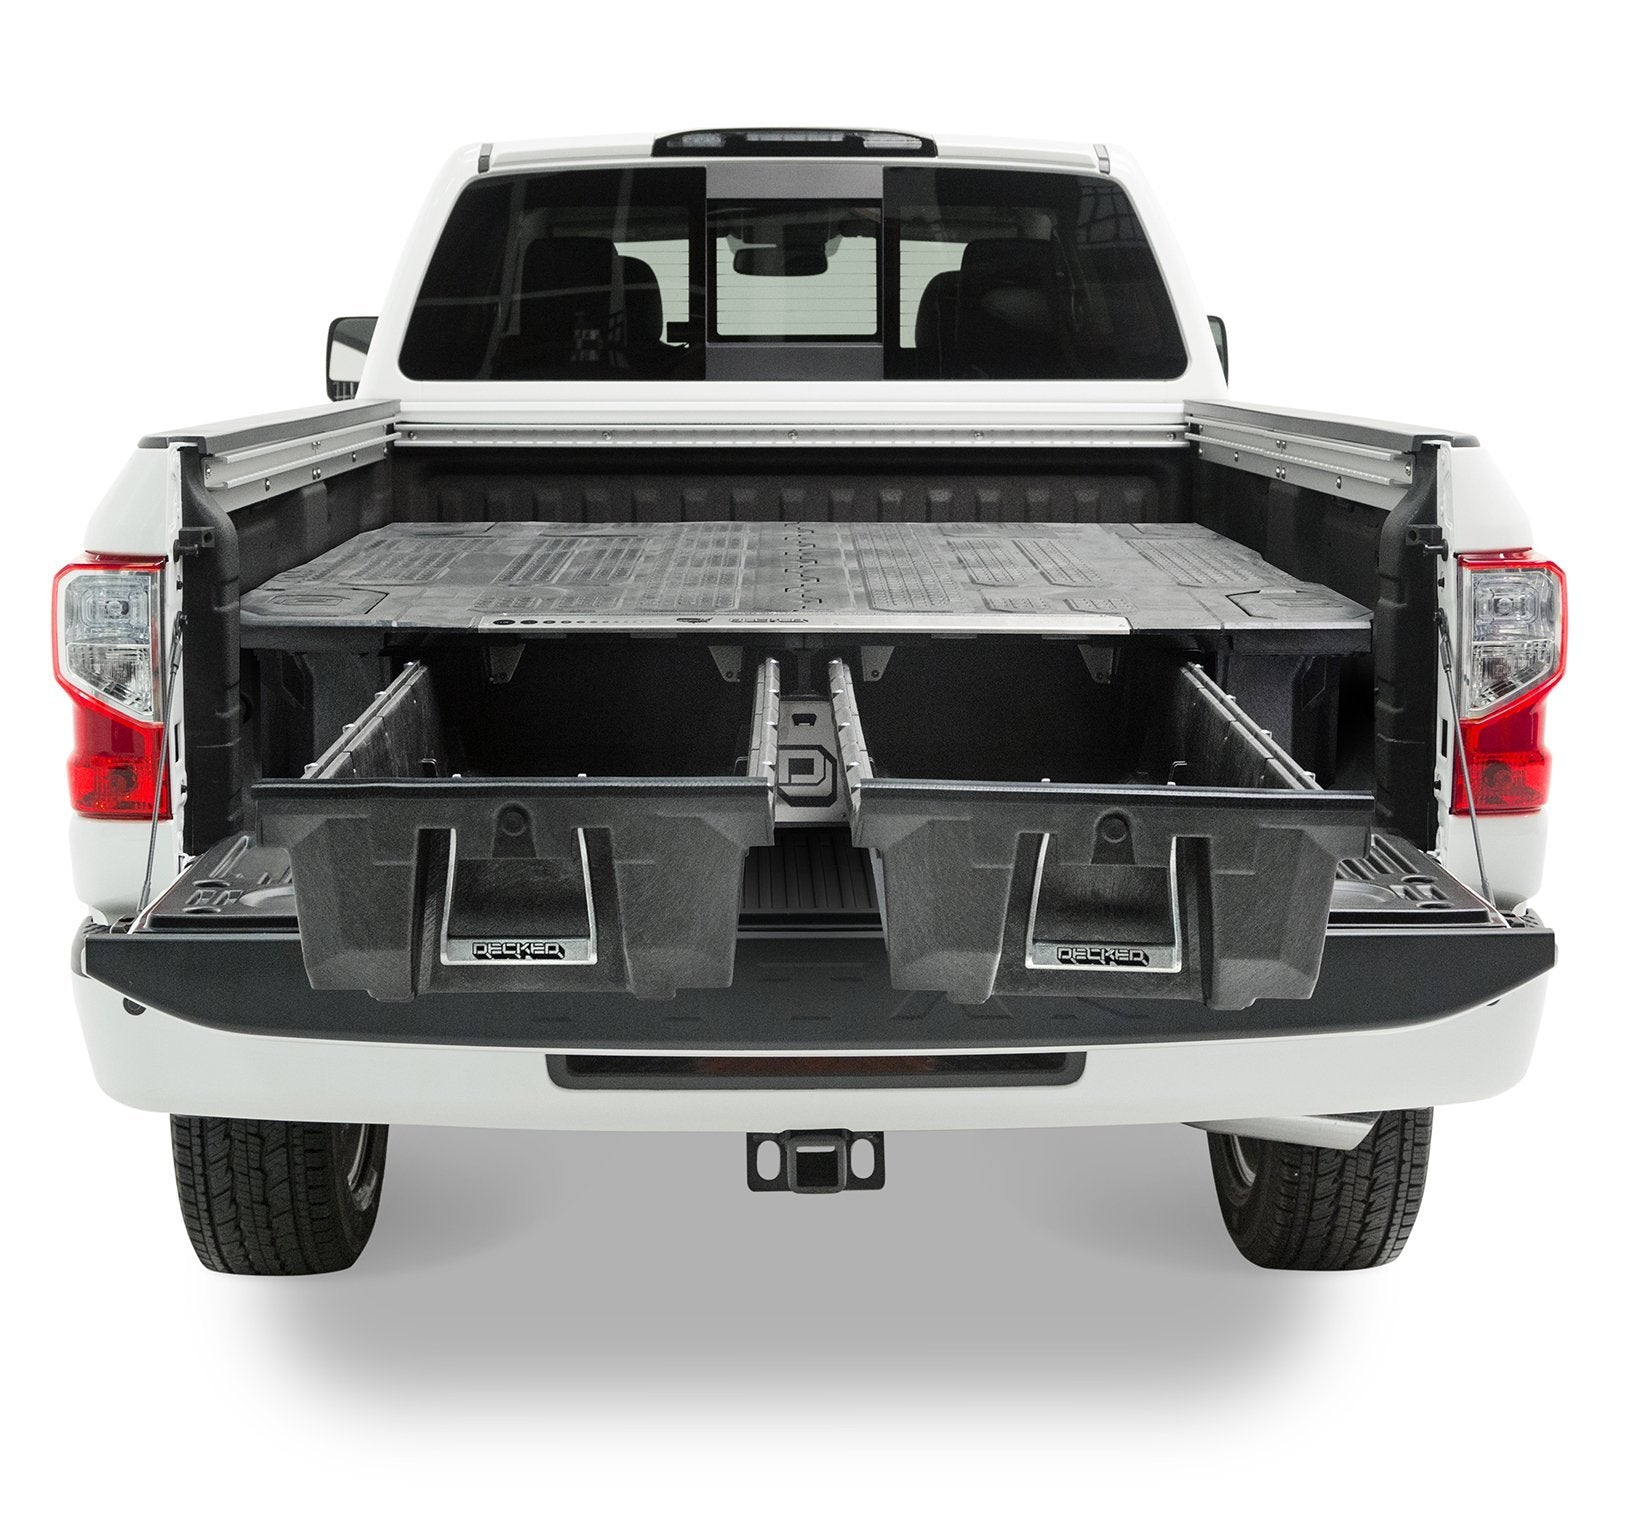 DECKED Nissan Titan Truck Bed Storage System and Organizer. Current Model.